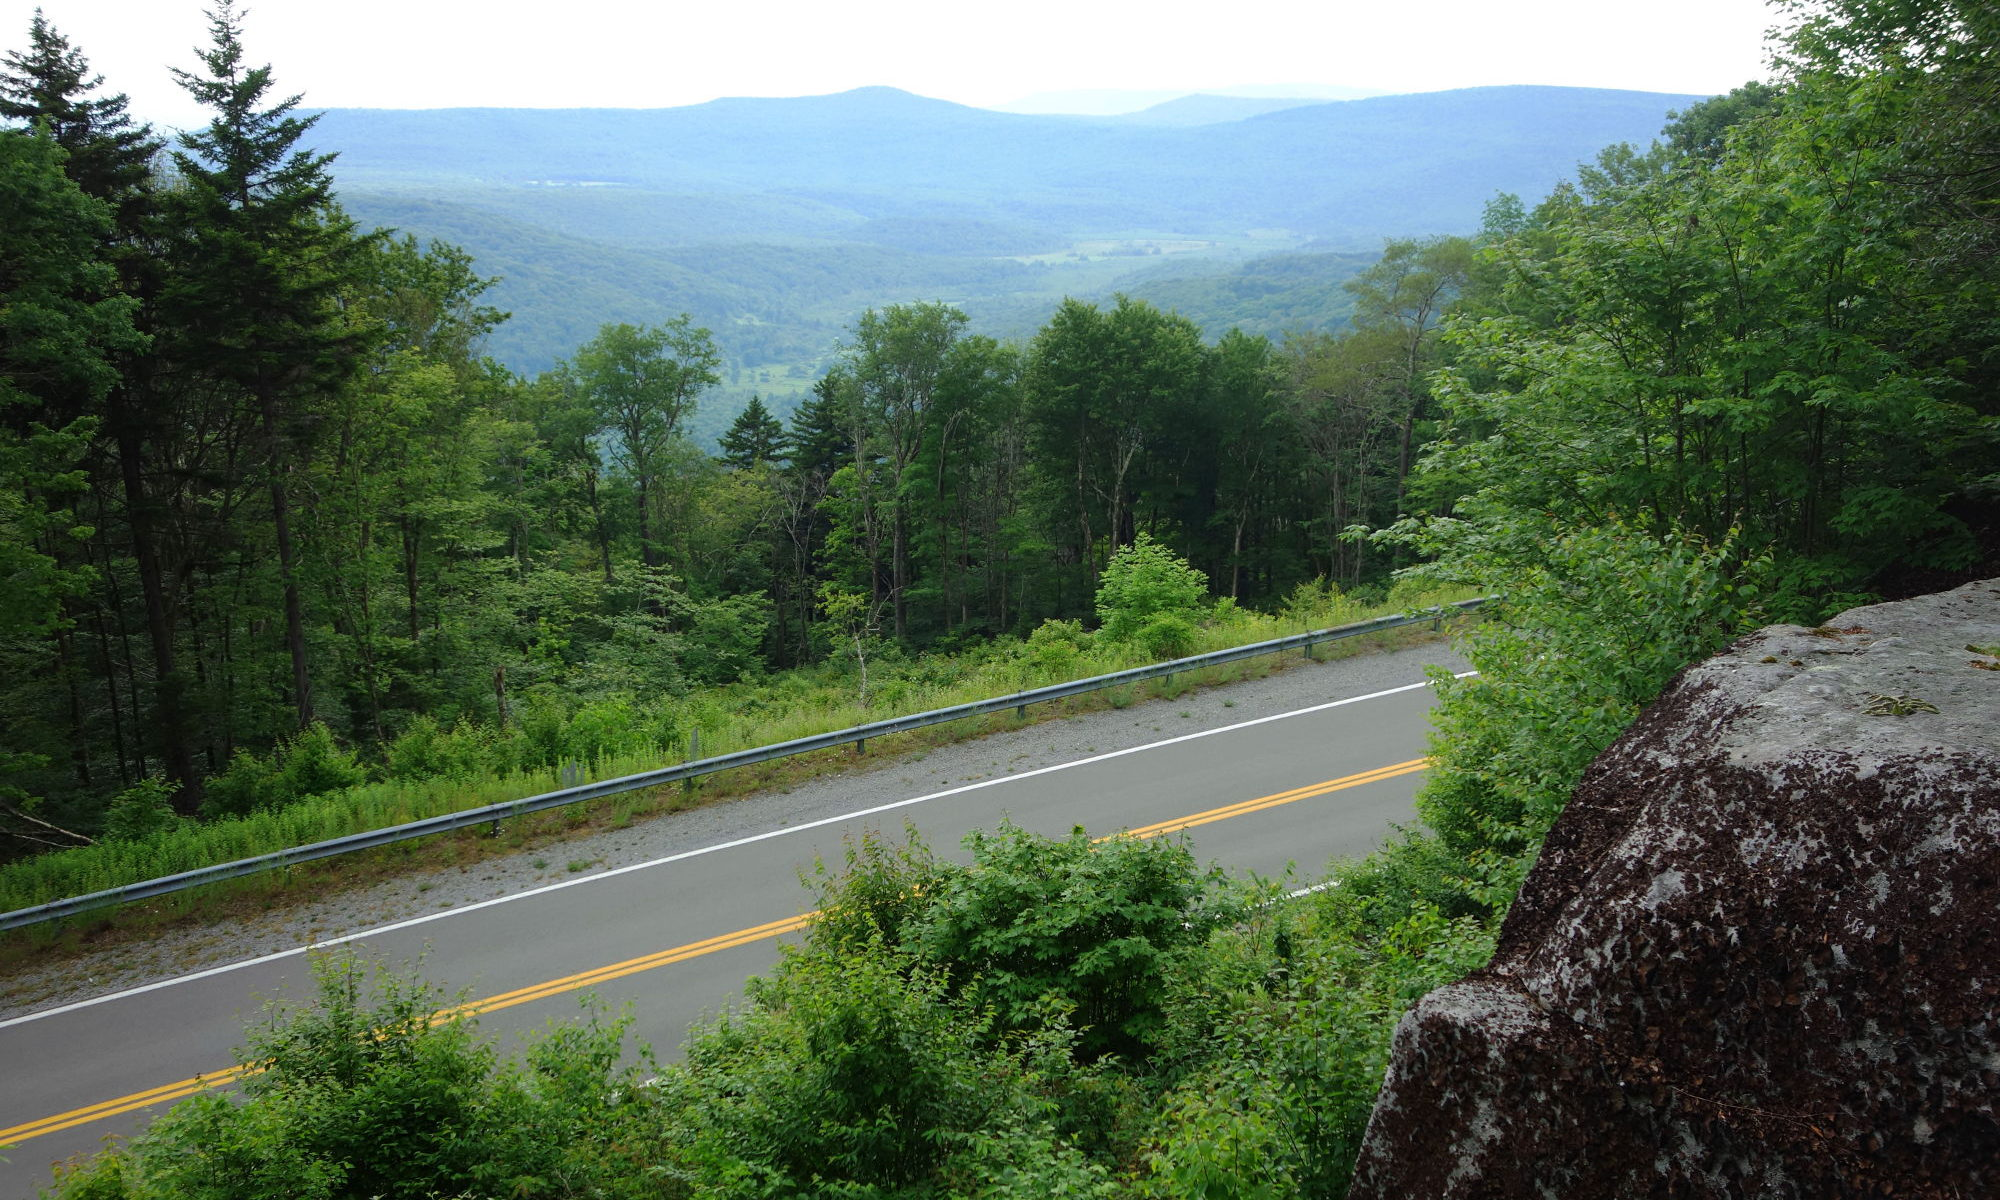 Highland Scenic Highway from Cranberry Glades Overlook